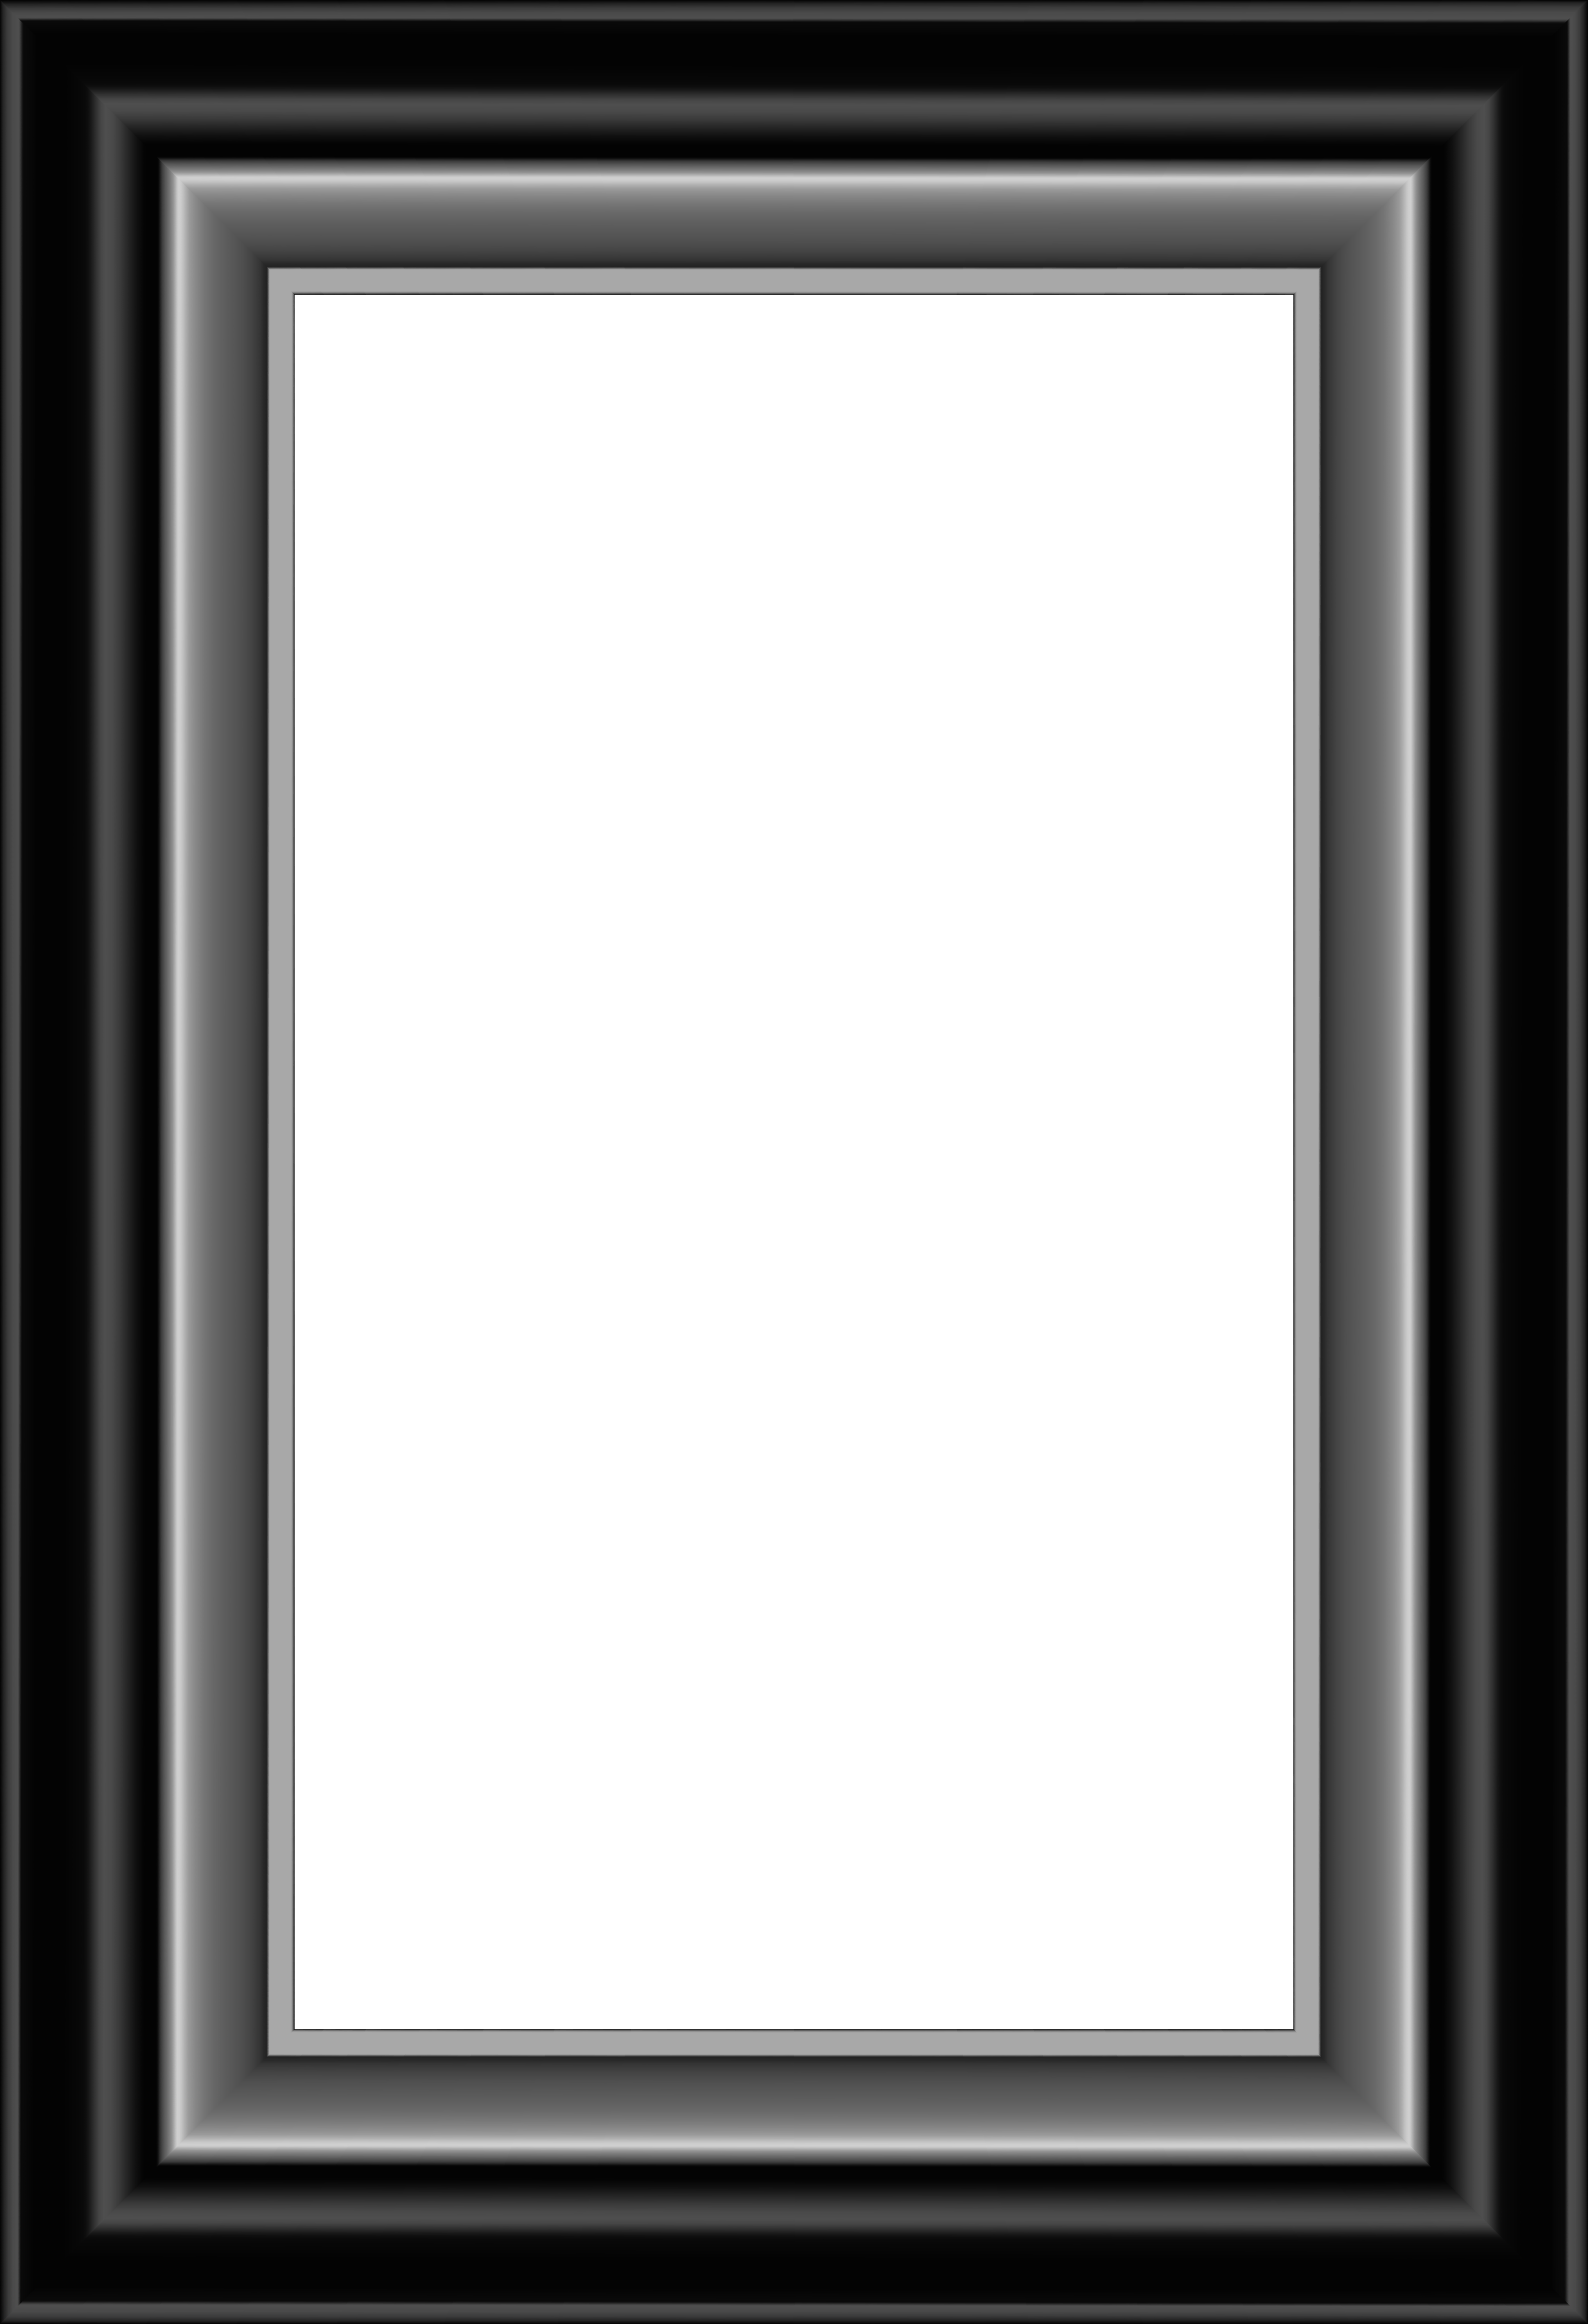 Black And Silver Frame Transparent Png Image Gallery Yopriceville High Quality Images And Transpare Photo Frame Gallery Silver Picture Frames Silver Frame